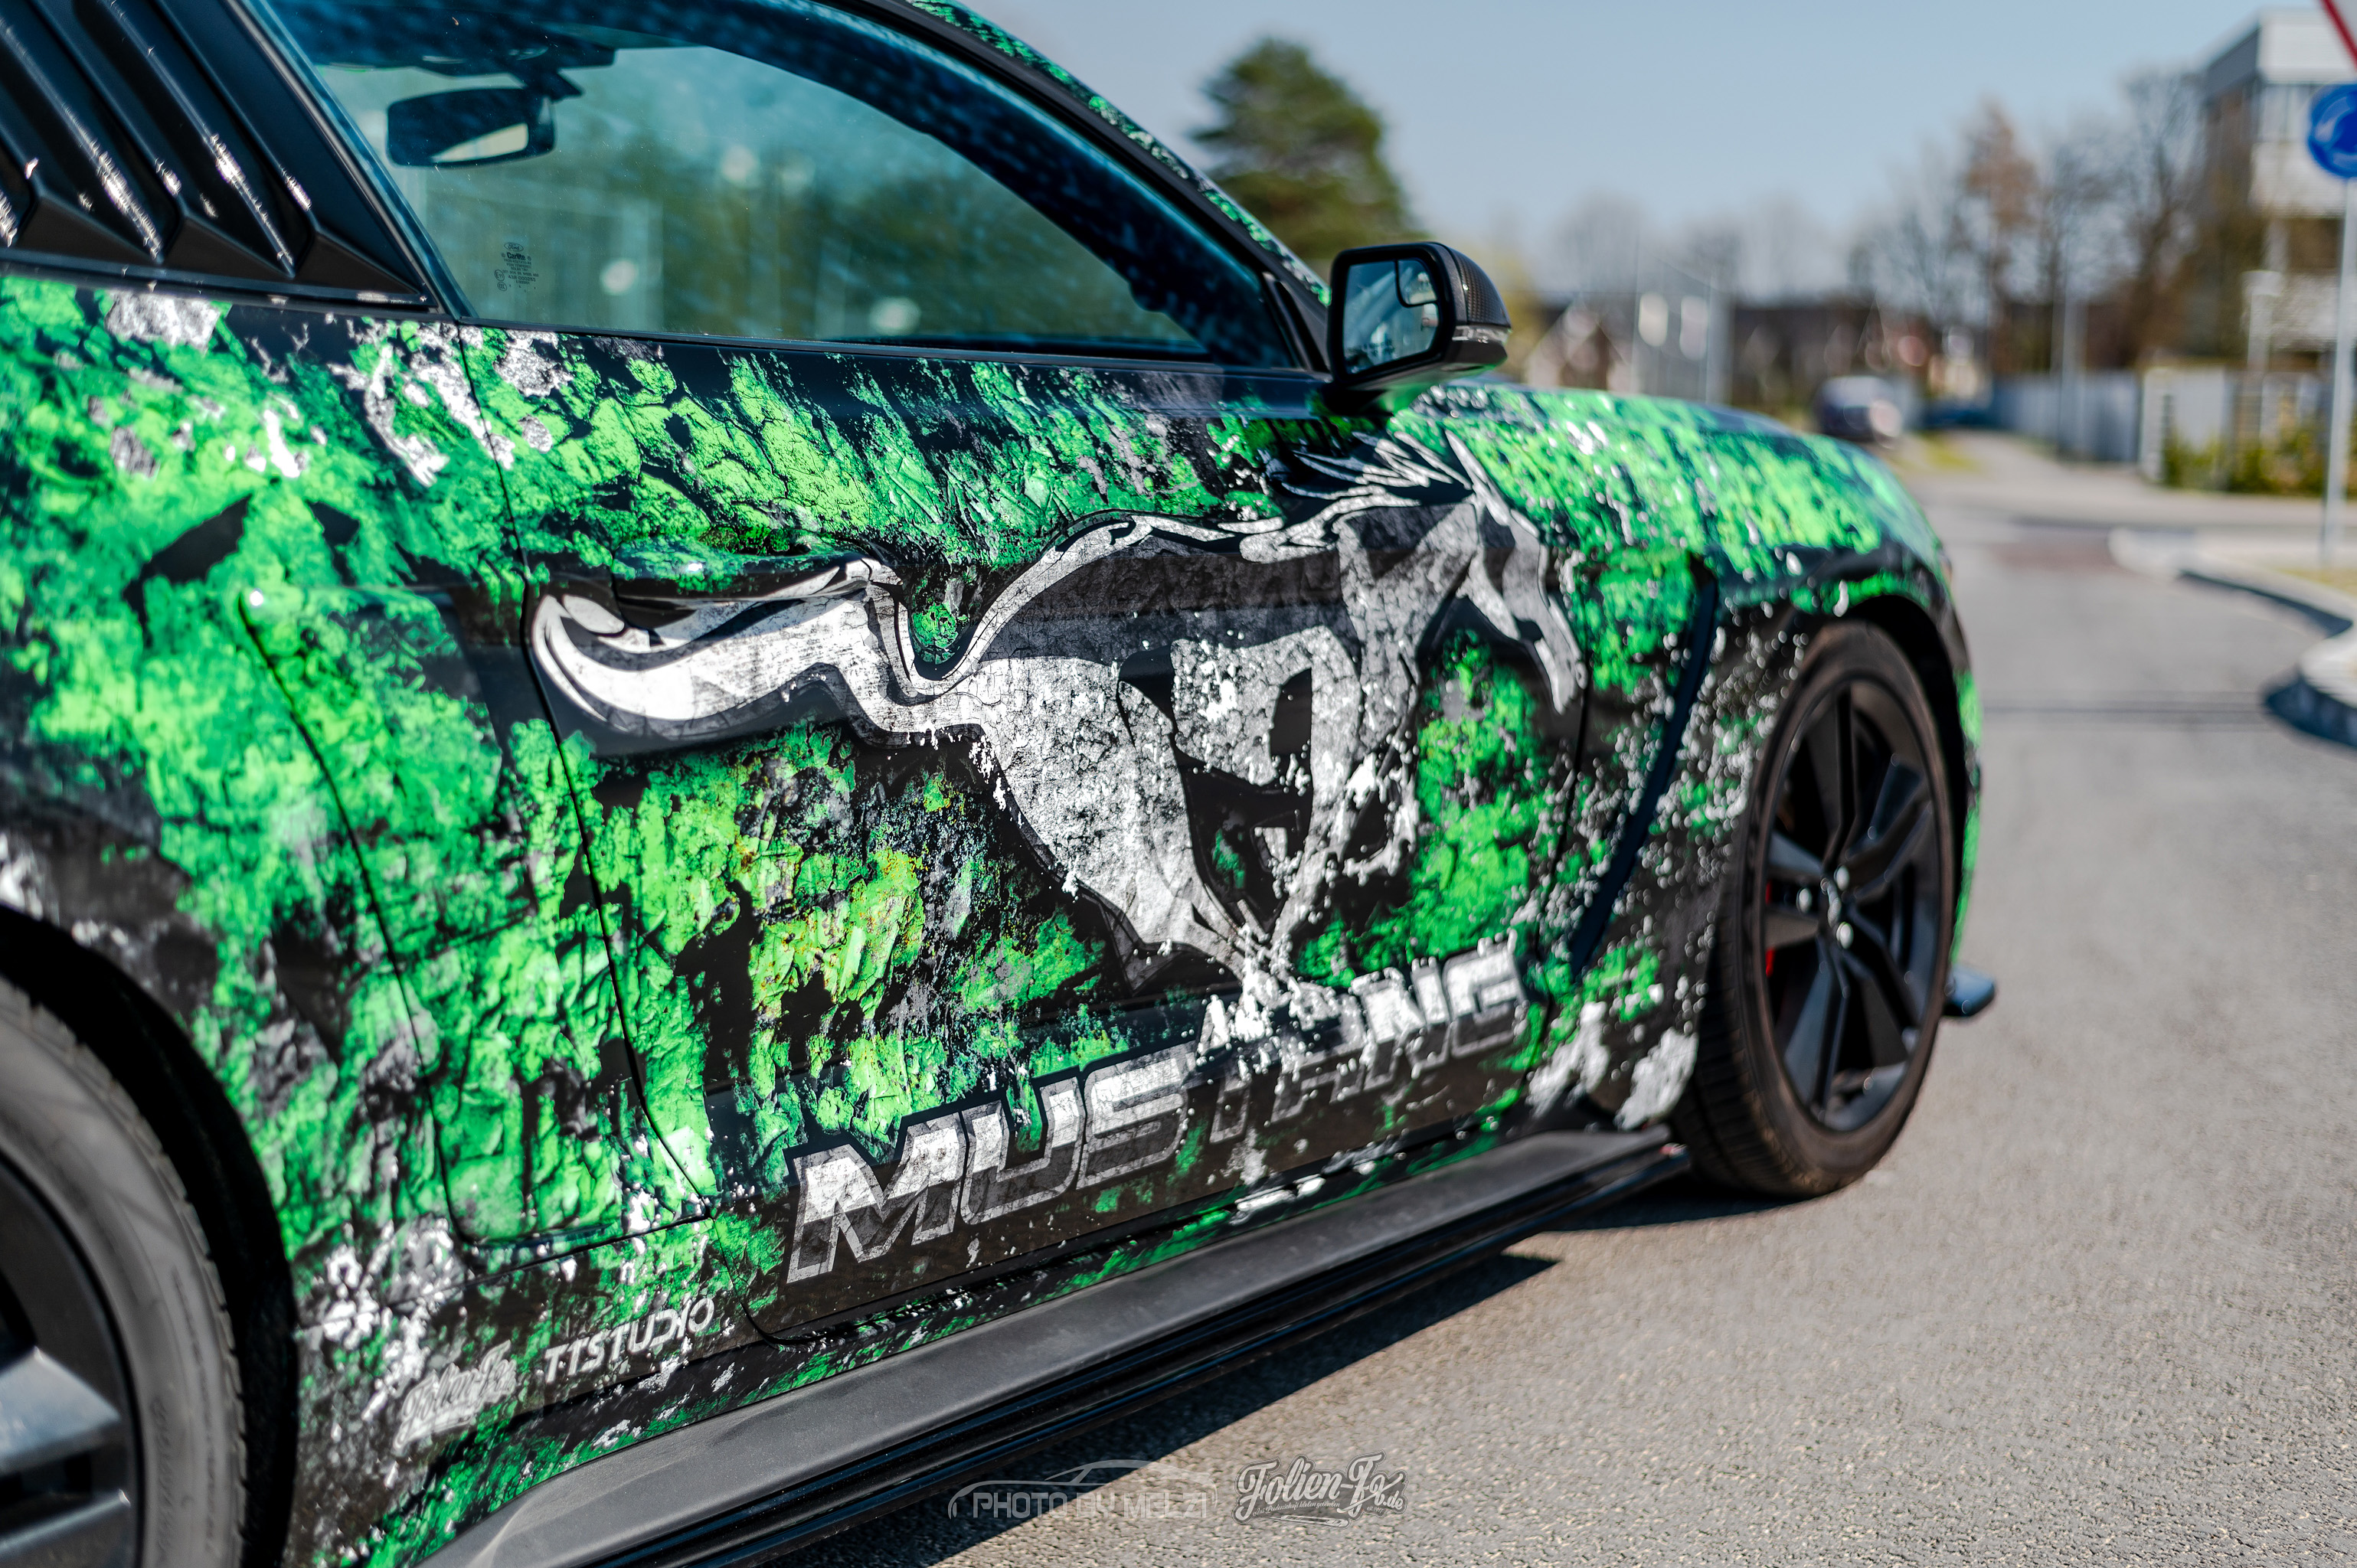 💥 Cracked green Mustang 💥